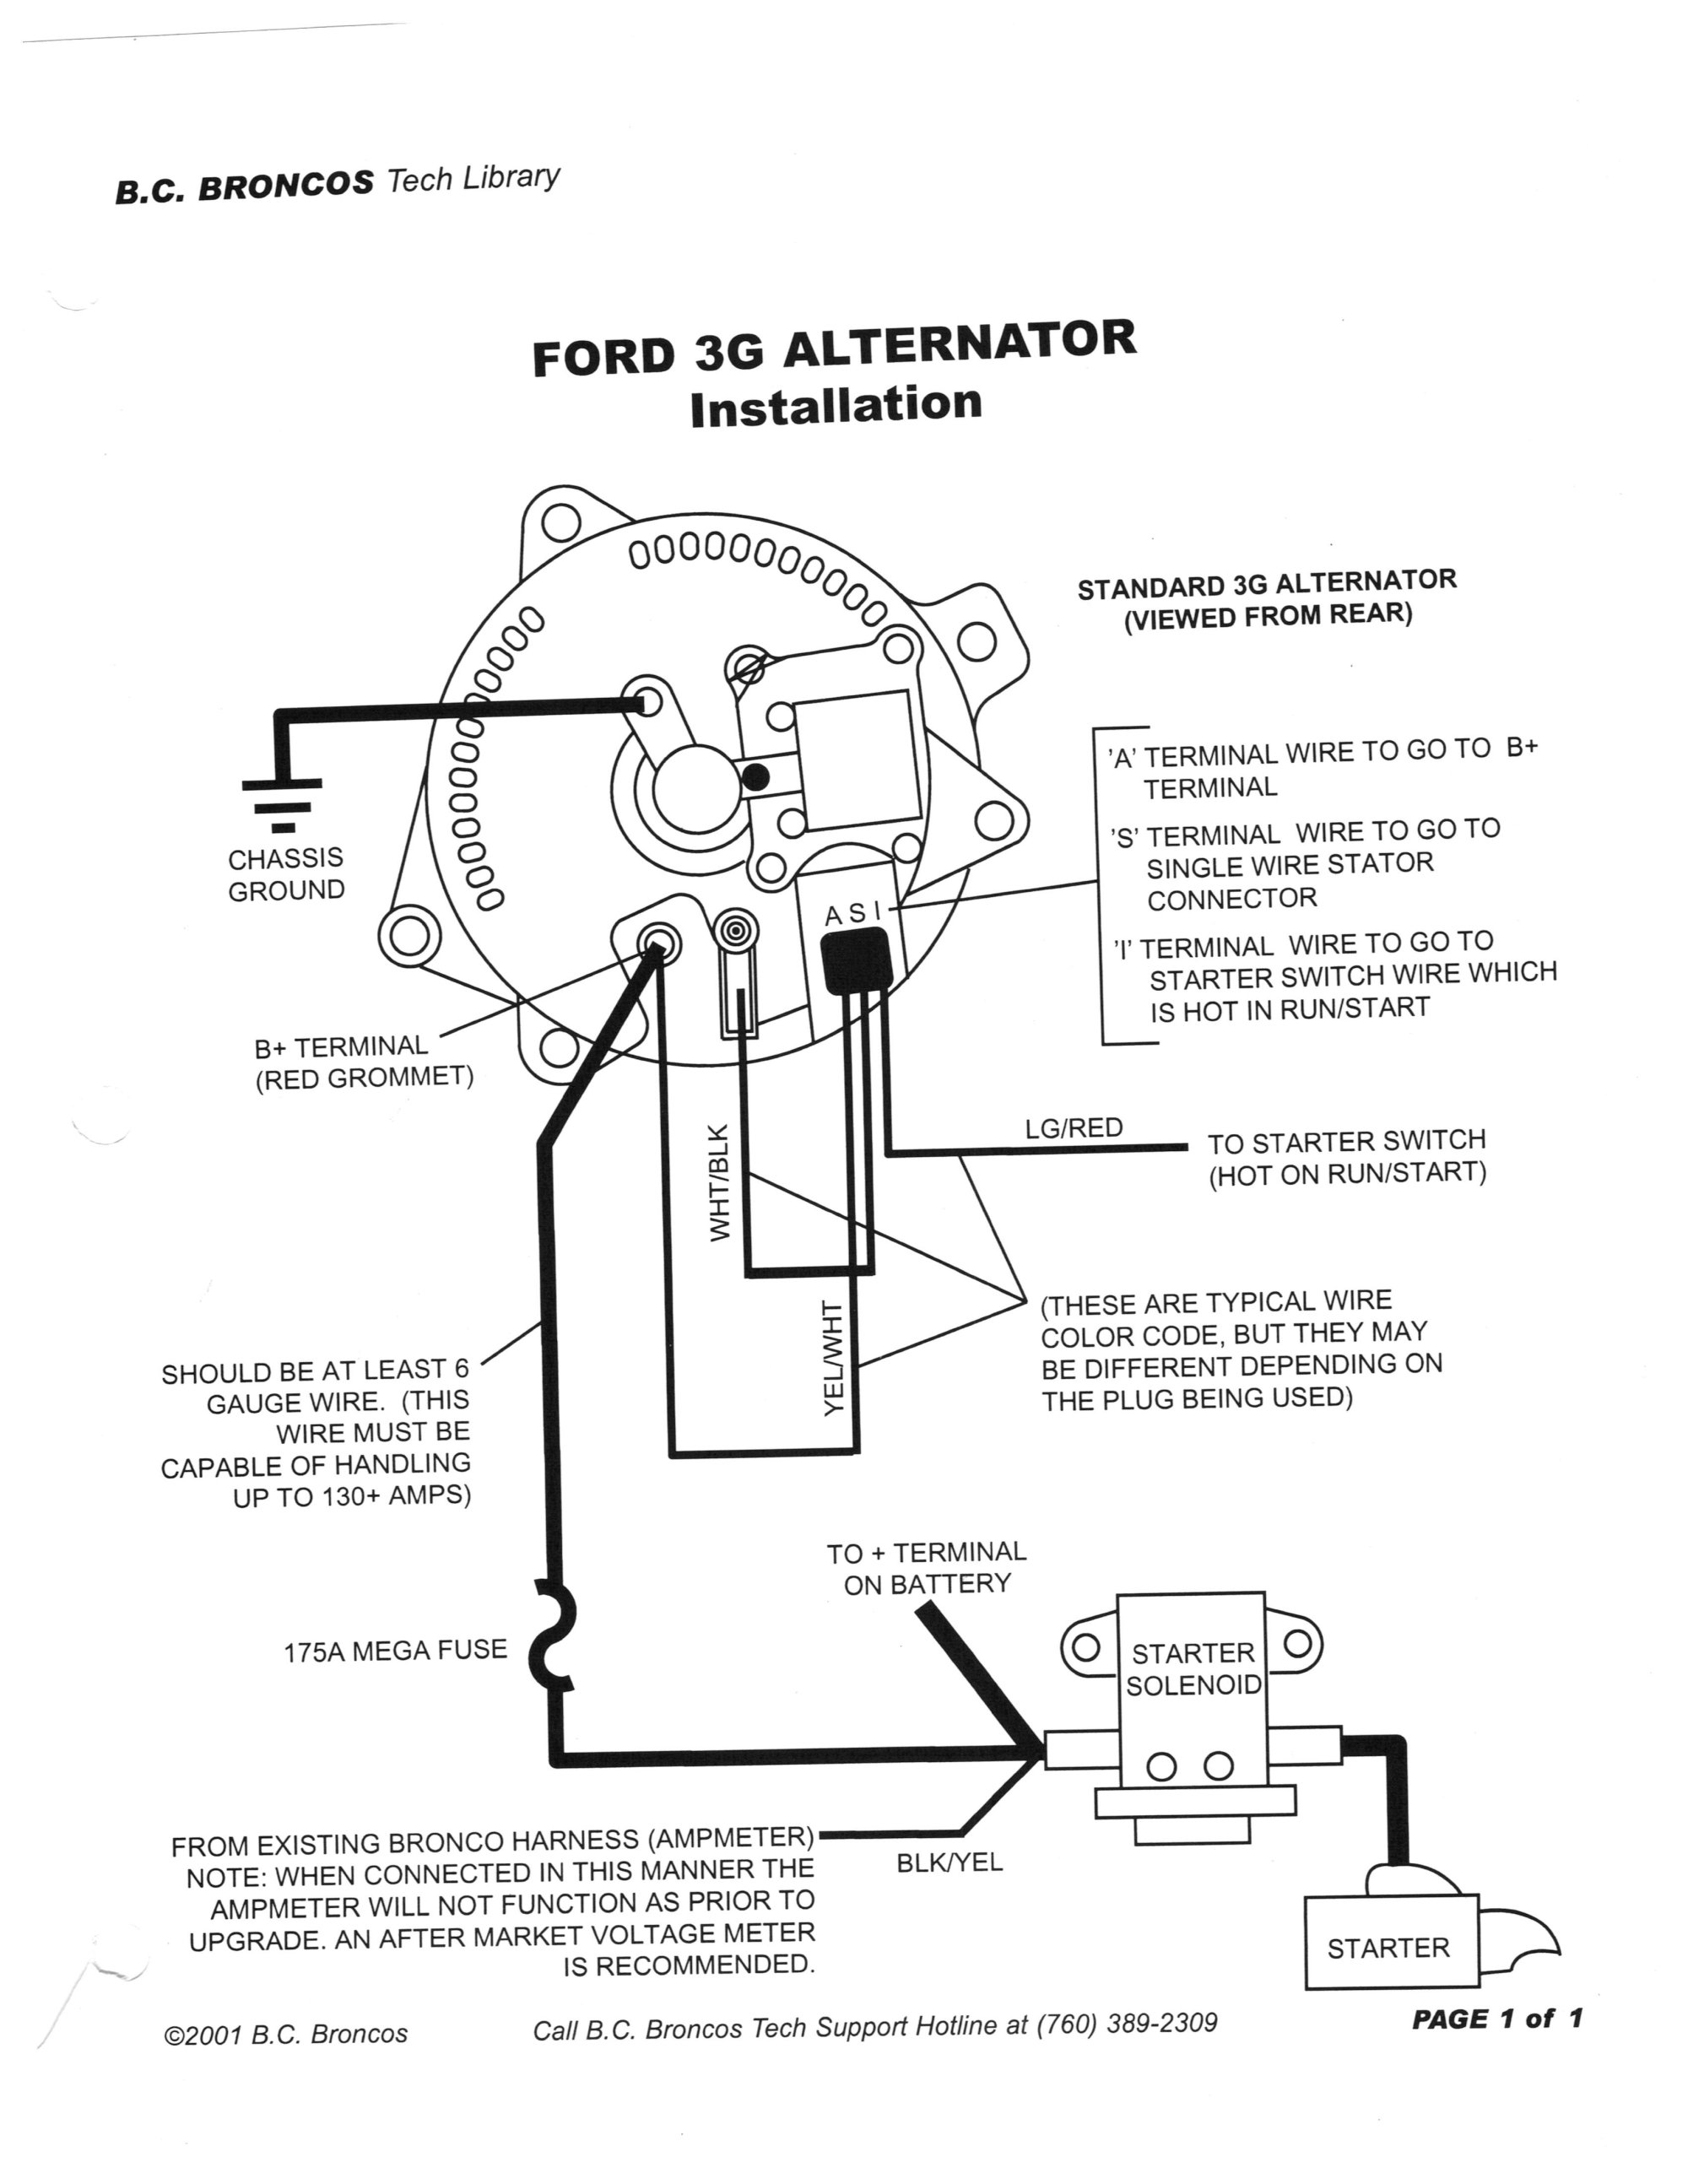 hight resolution of 3g alternator wiring ford mustang forum 1965 mustang alternator wiring diagram 1966 ford mustang alternator wiring